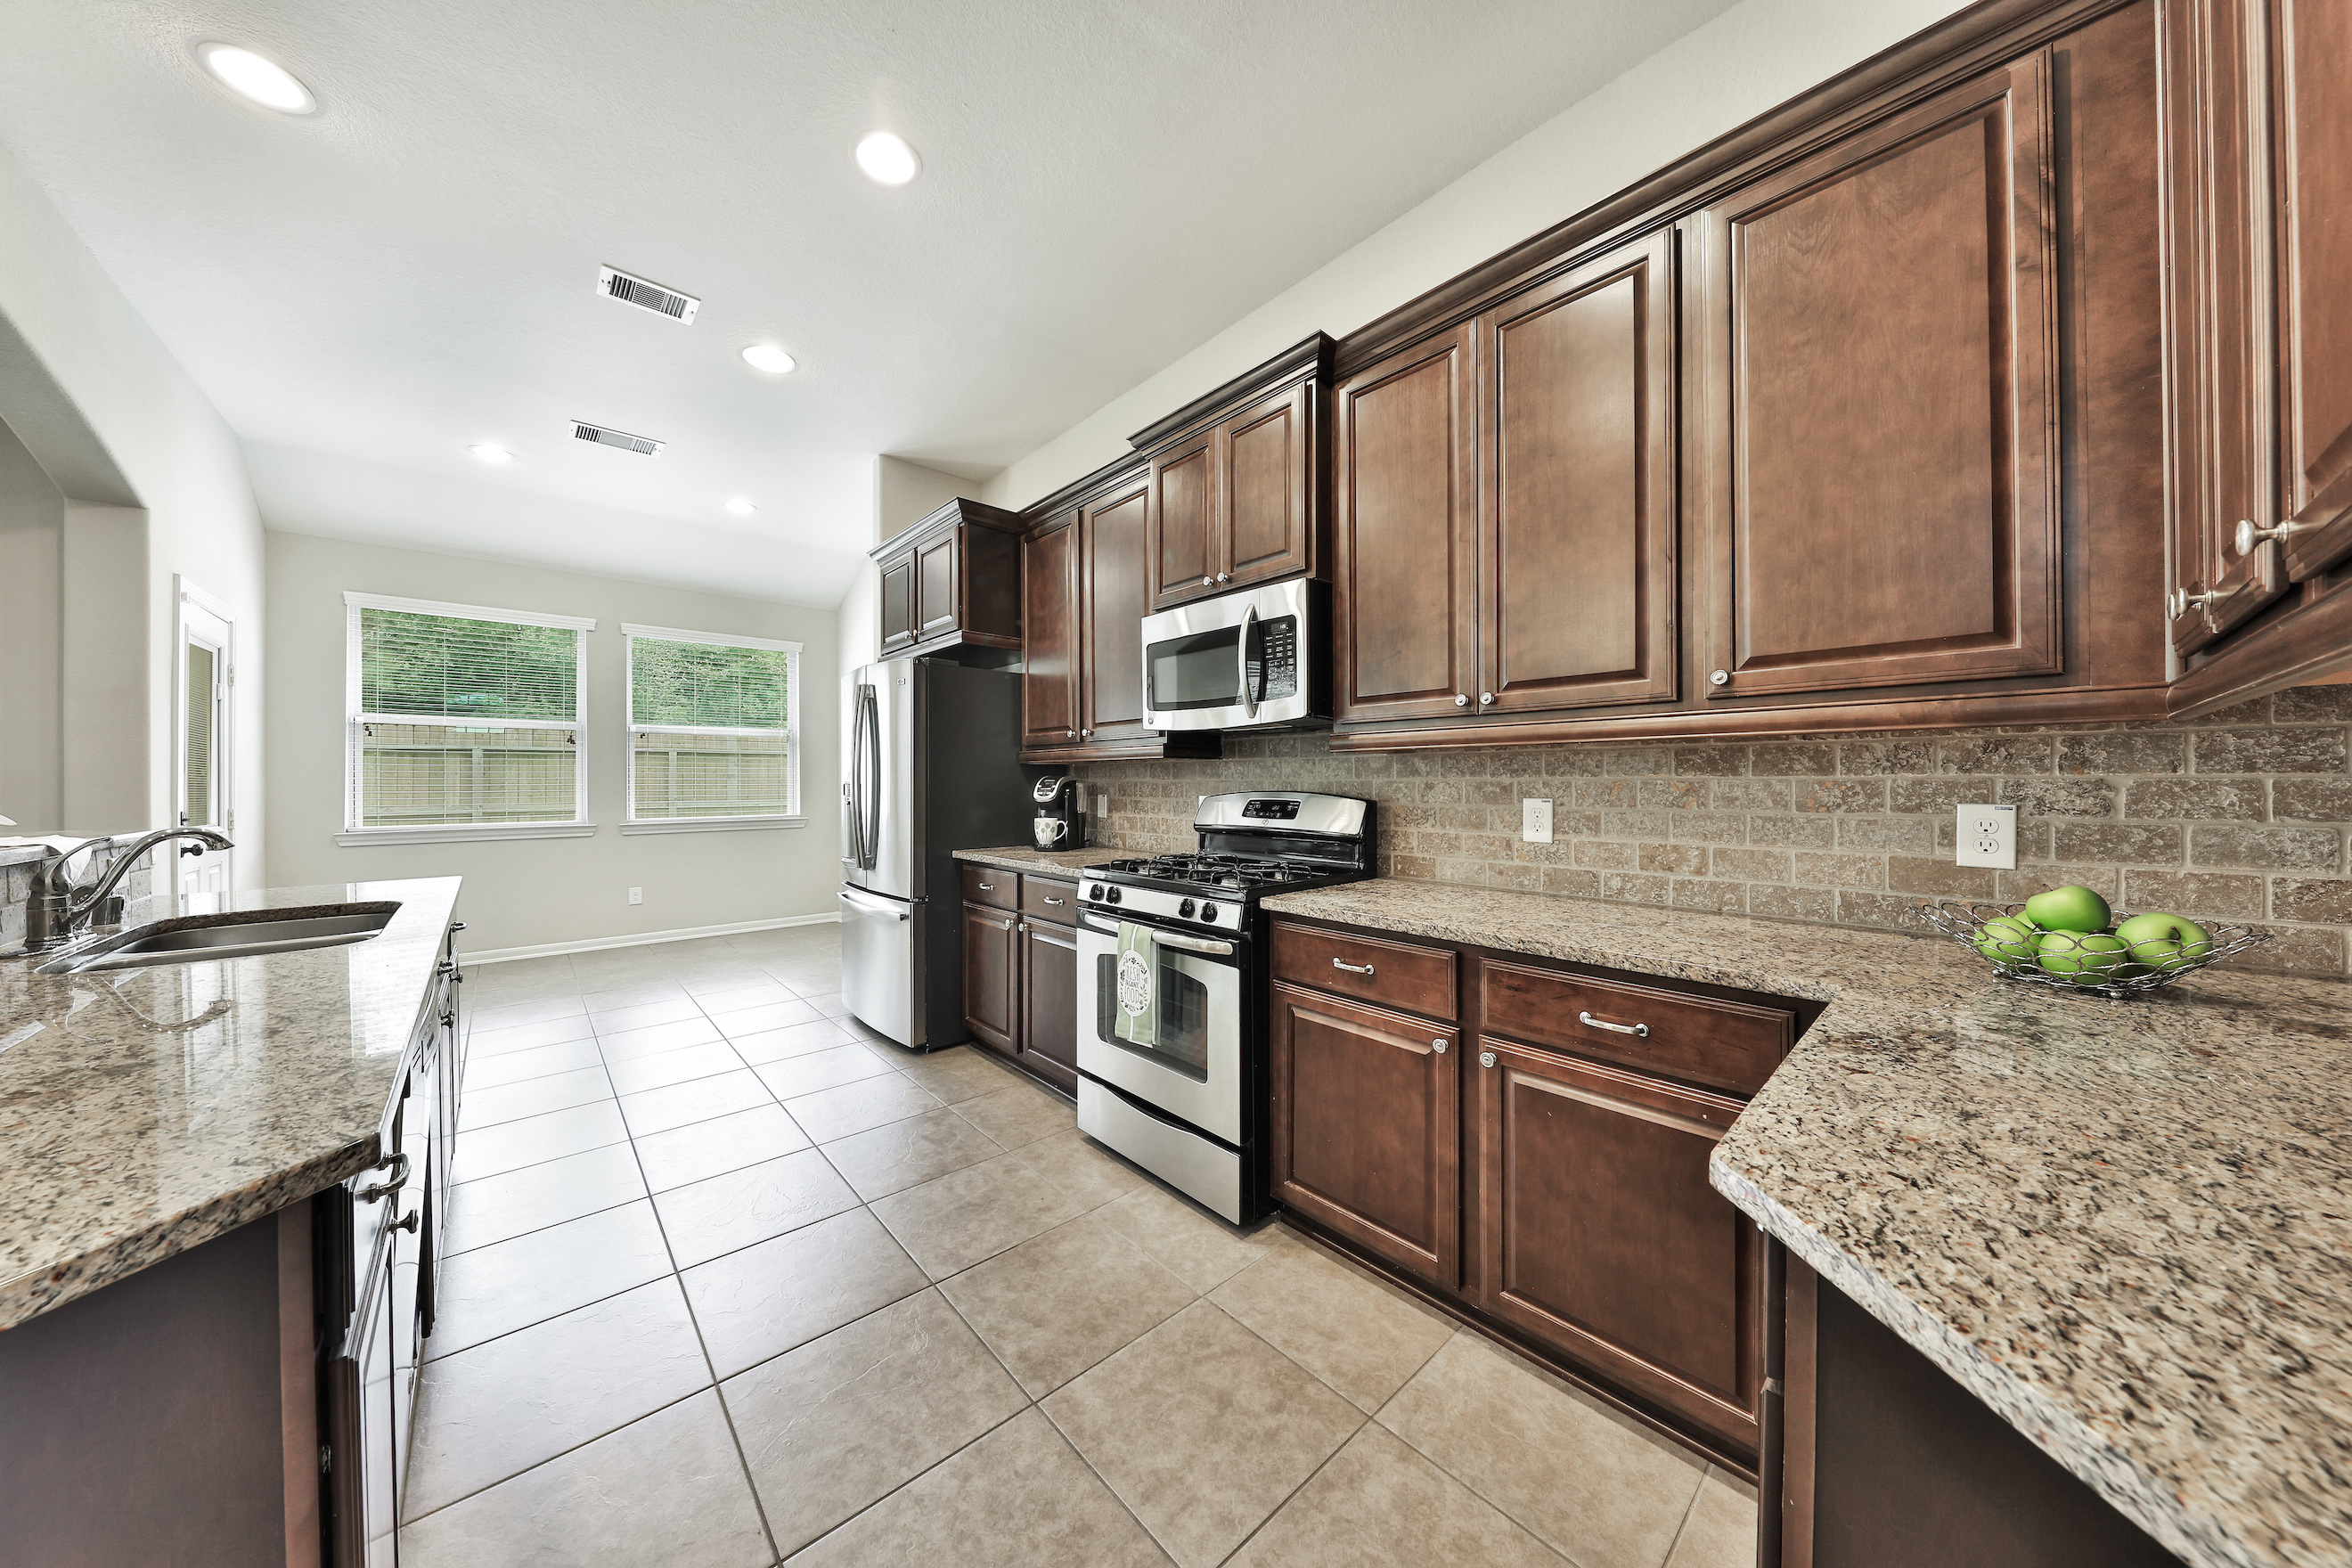 11219 Misty Willow Ln, Tomball, TX 77375